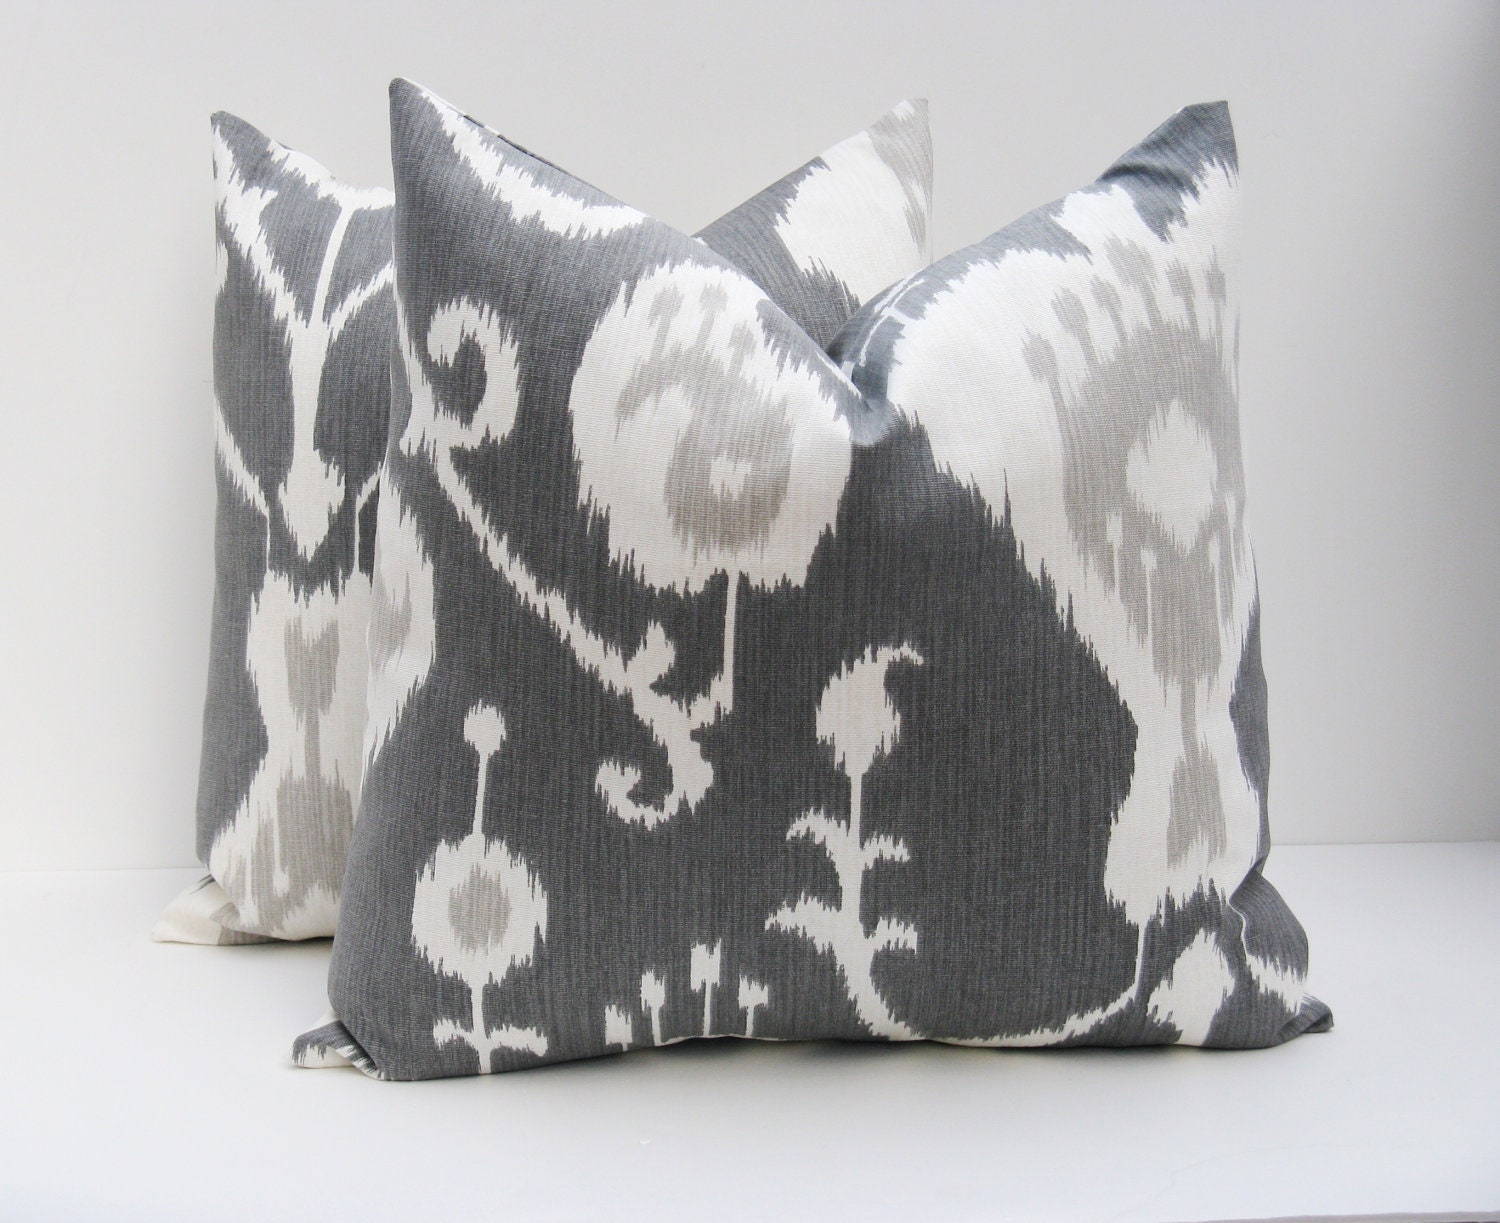 20x20 Throw Pillow Covers.Ikat Pillow.Dark Gray Pillow.Grey Ikat pillow. Gray and White.Housewares.Home Decor Printed fabric on both sides